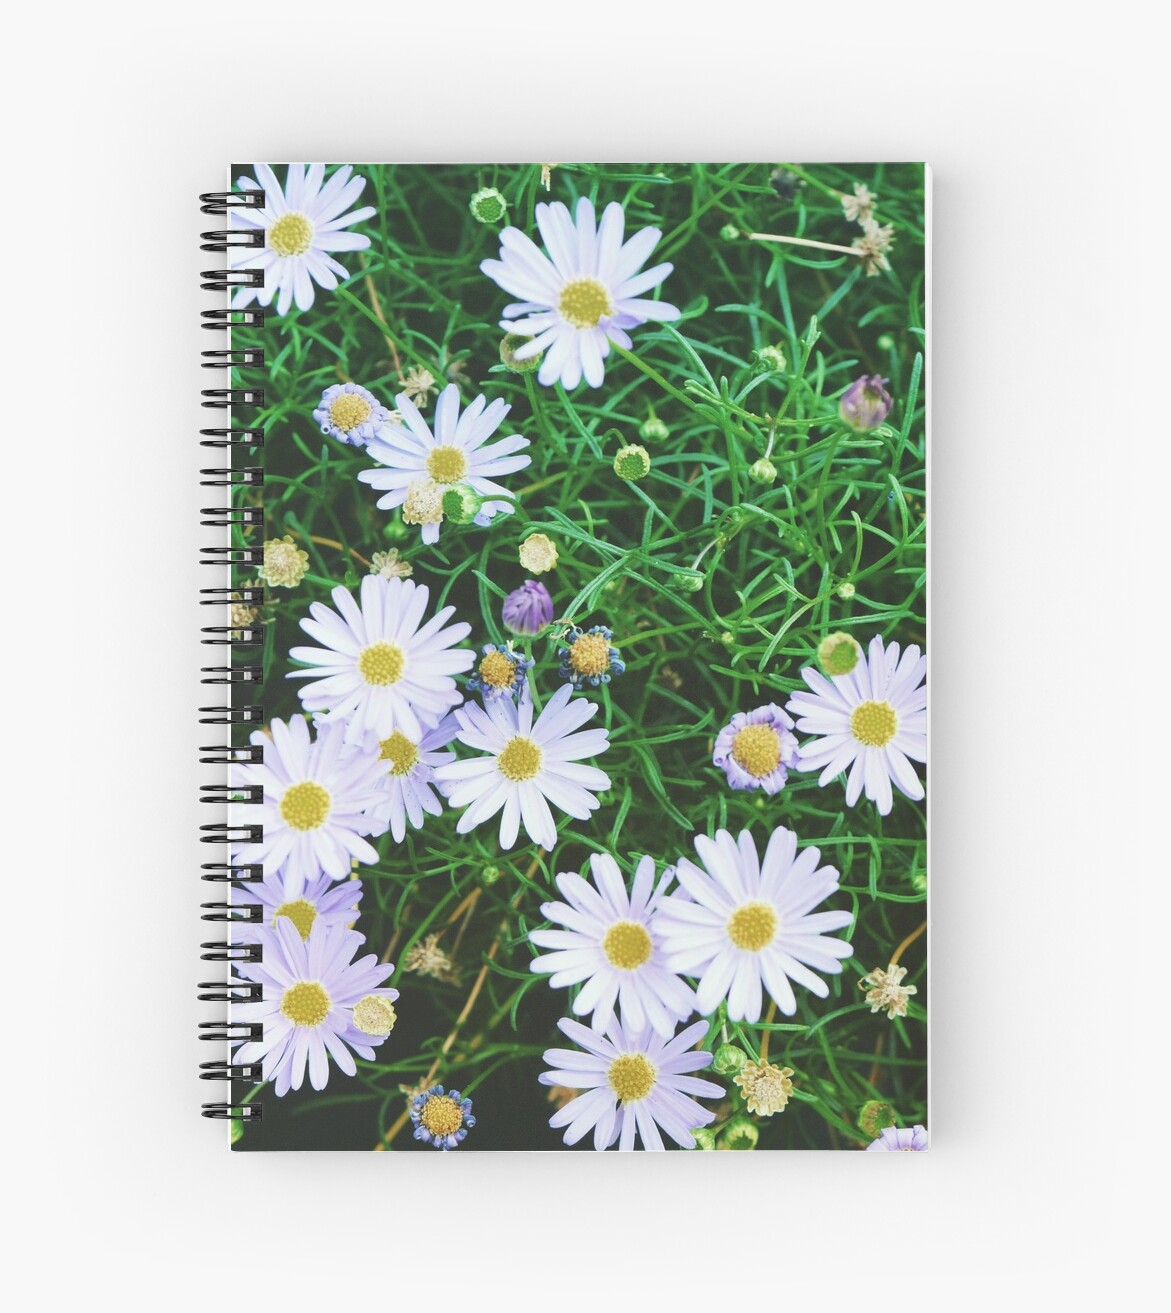 Daisy field by AndreuCalaf